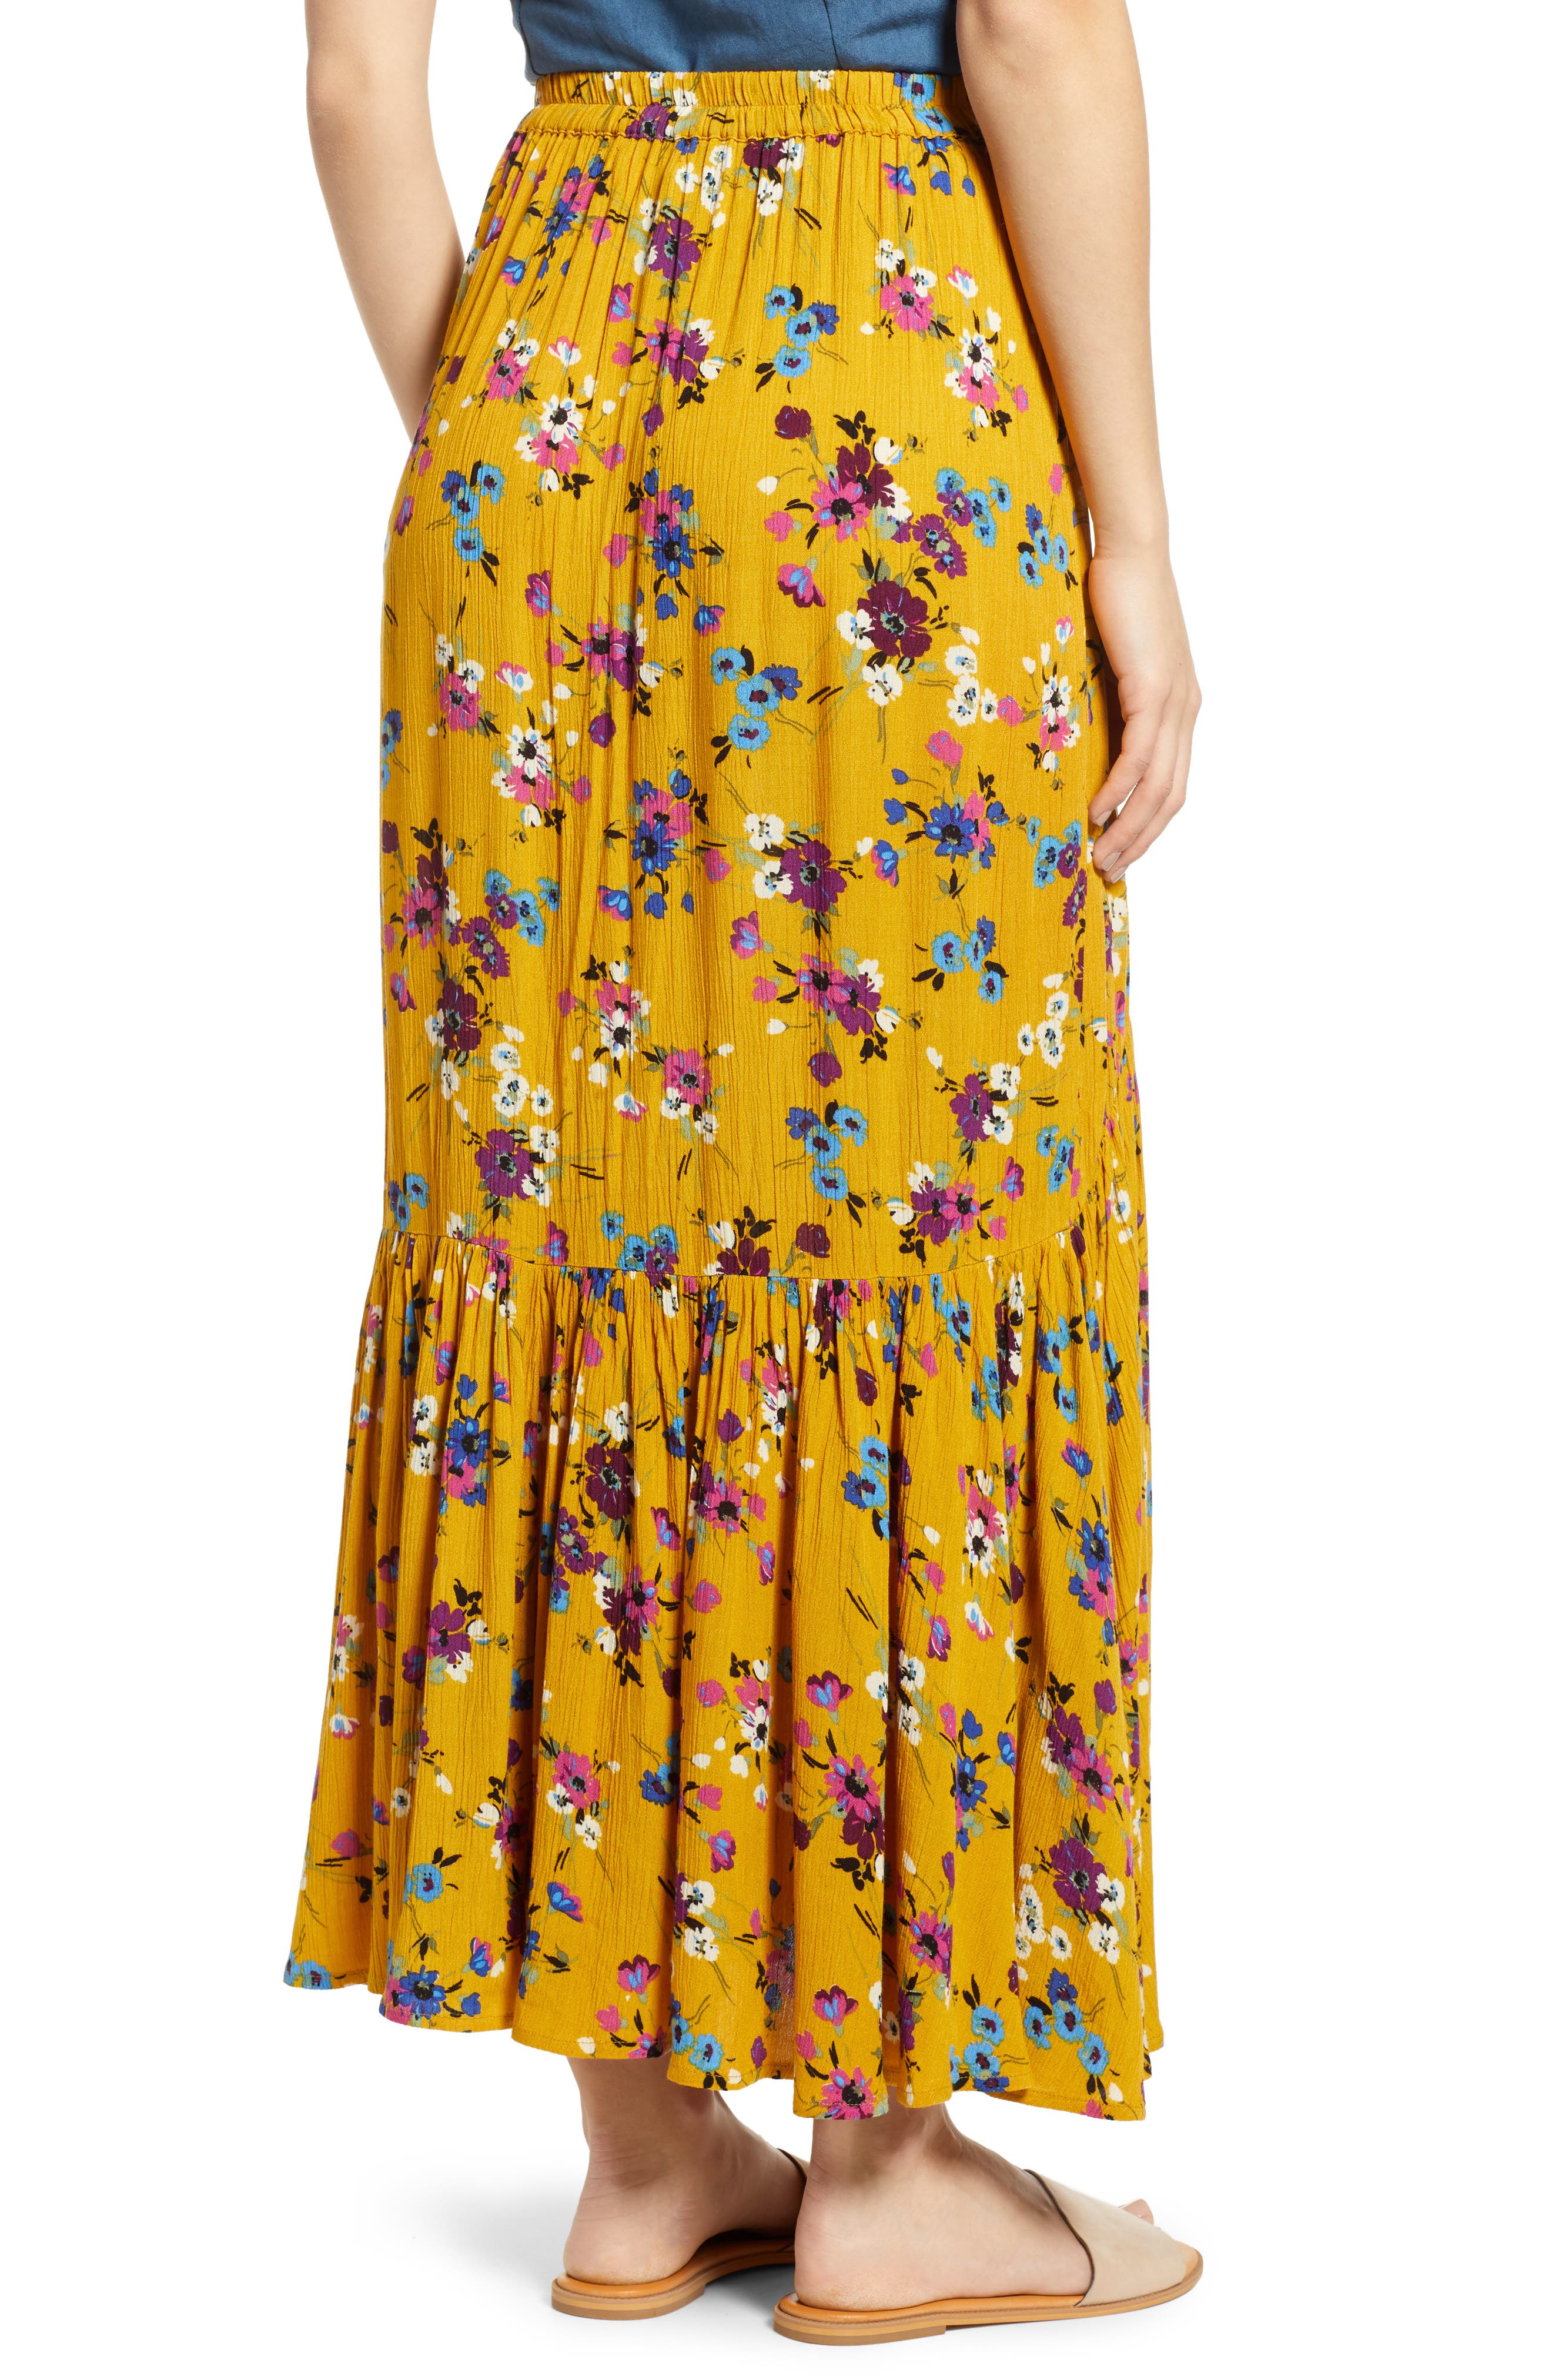 BAND OF GYPSIES, Marseille Button Front Maxi Skirt, Alternate thumbnail 2, color, 700